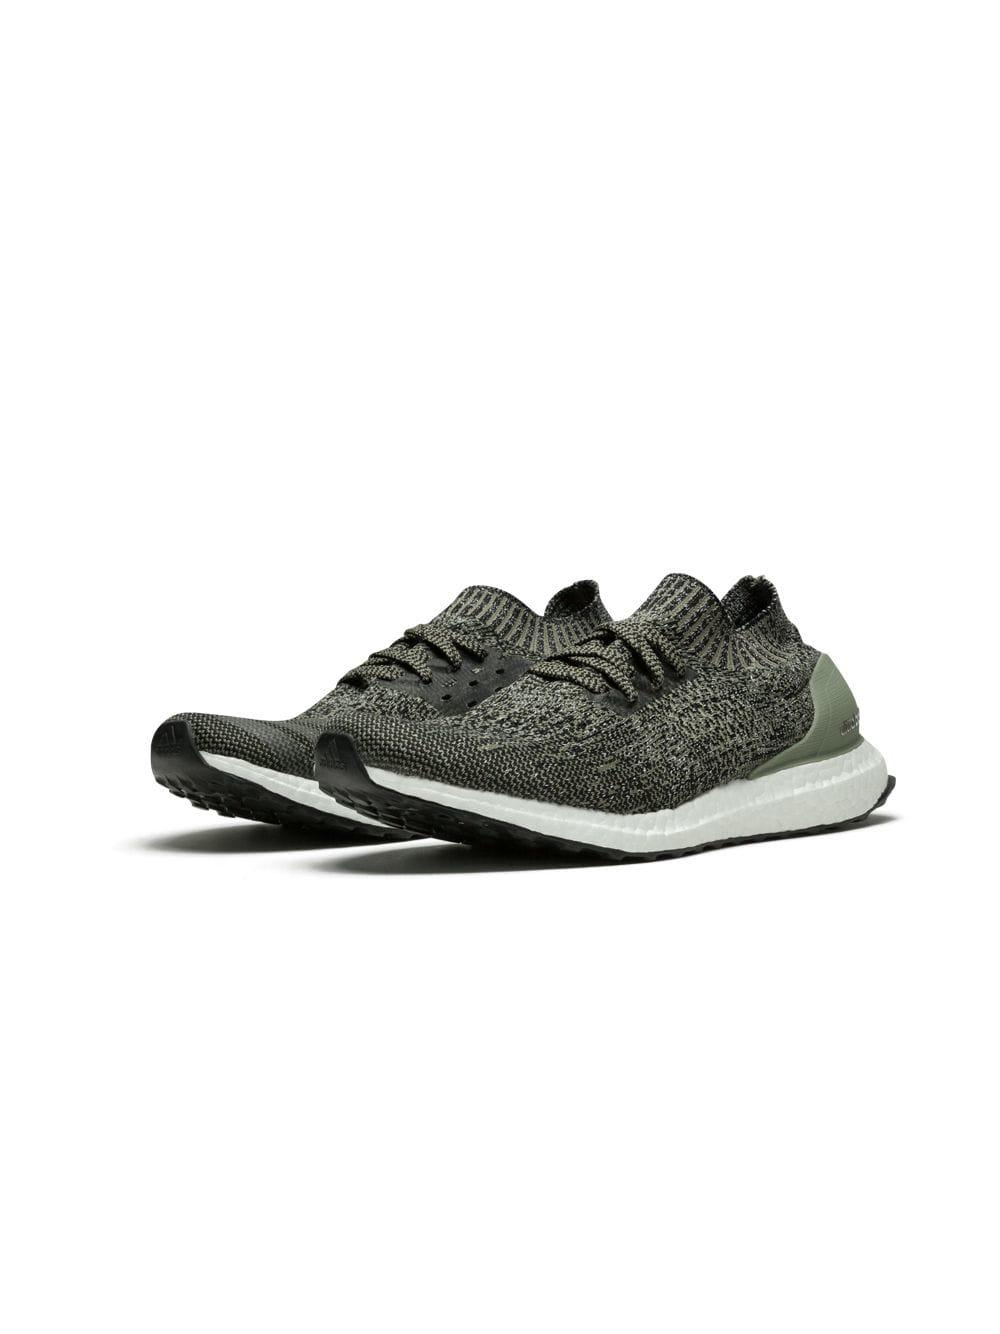 0db165e69 Lyst - adidas Ultraboost Uncaged Sneakers in Green for Men